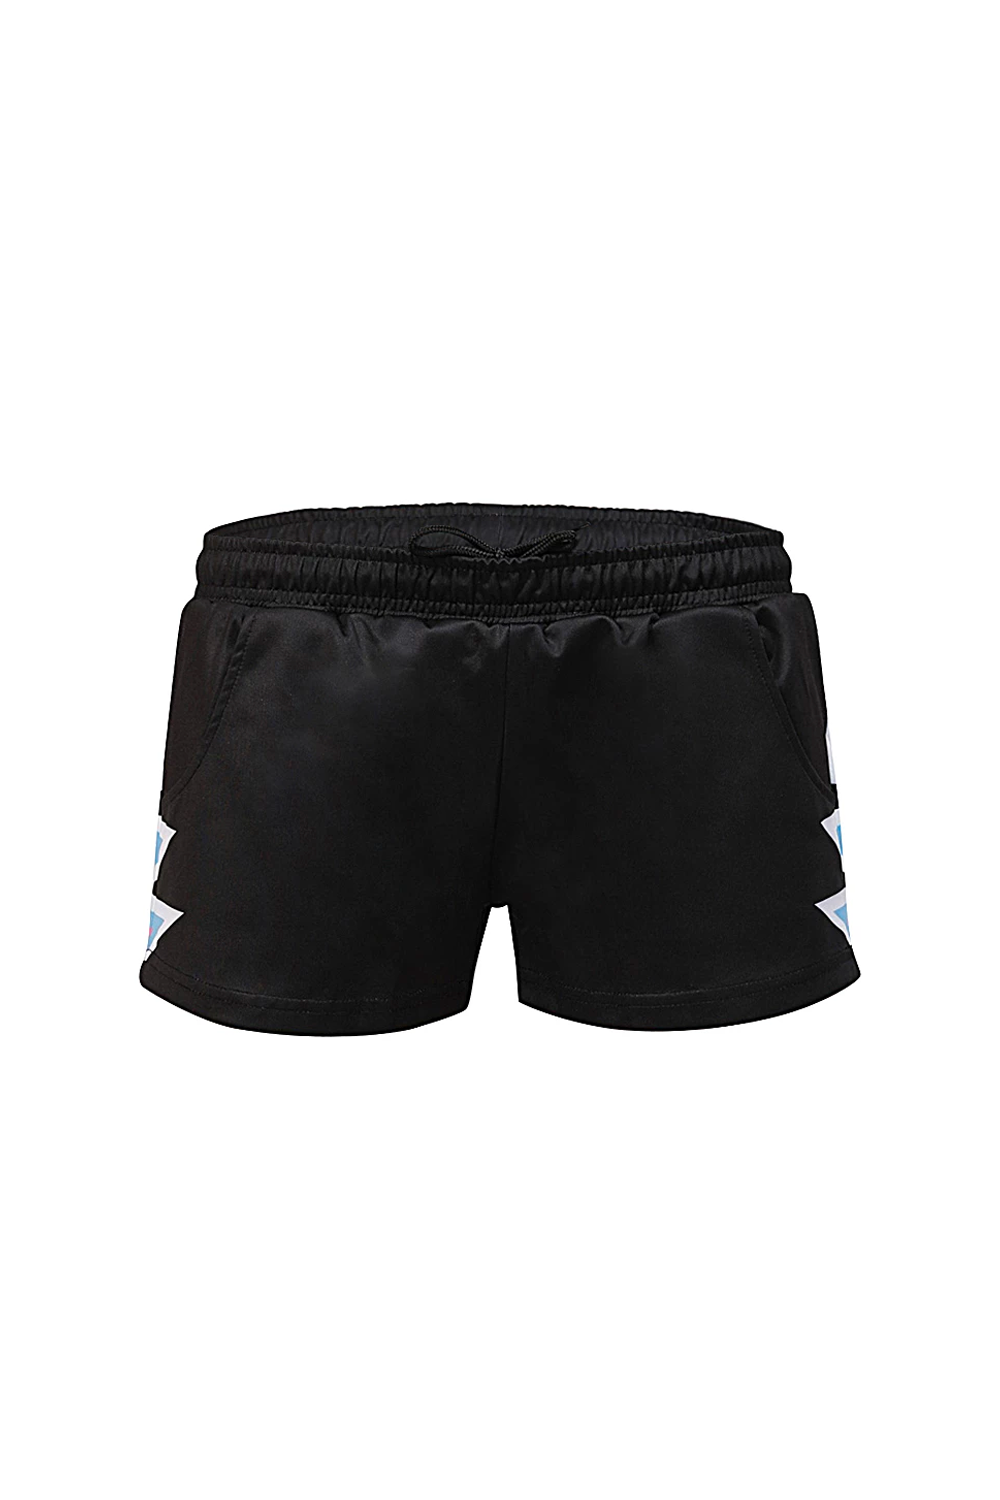 Black Heartbeat Sports Shorts